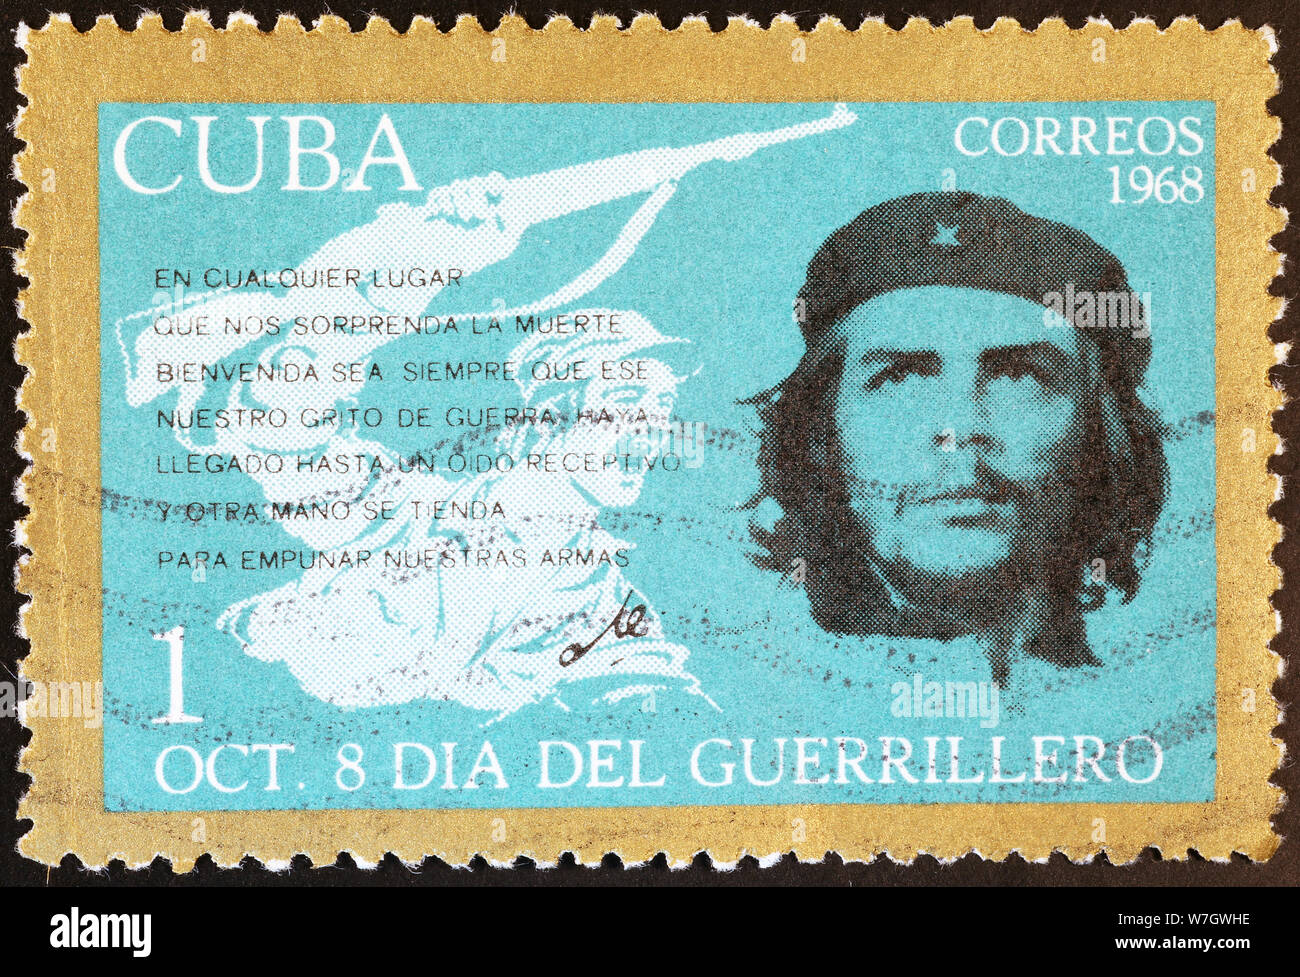 Che Guevara and guerrillero on cuban postage stamp Stock Photo